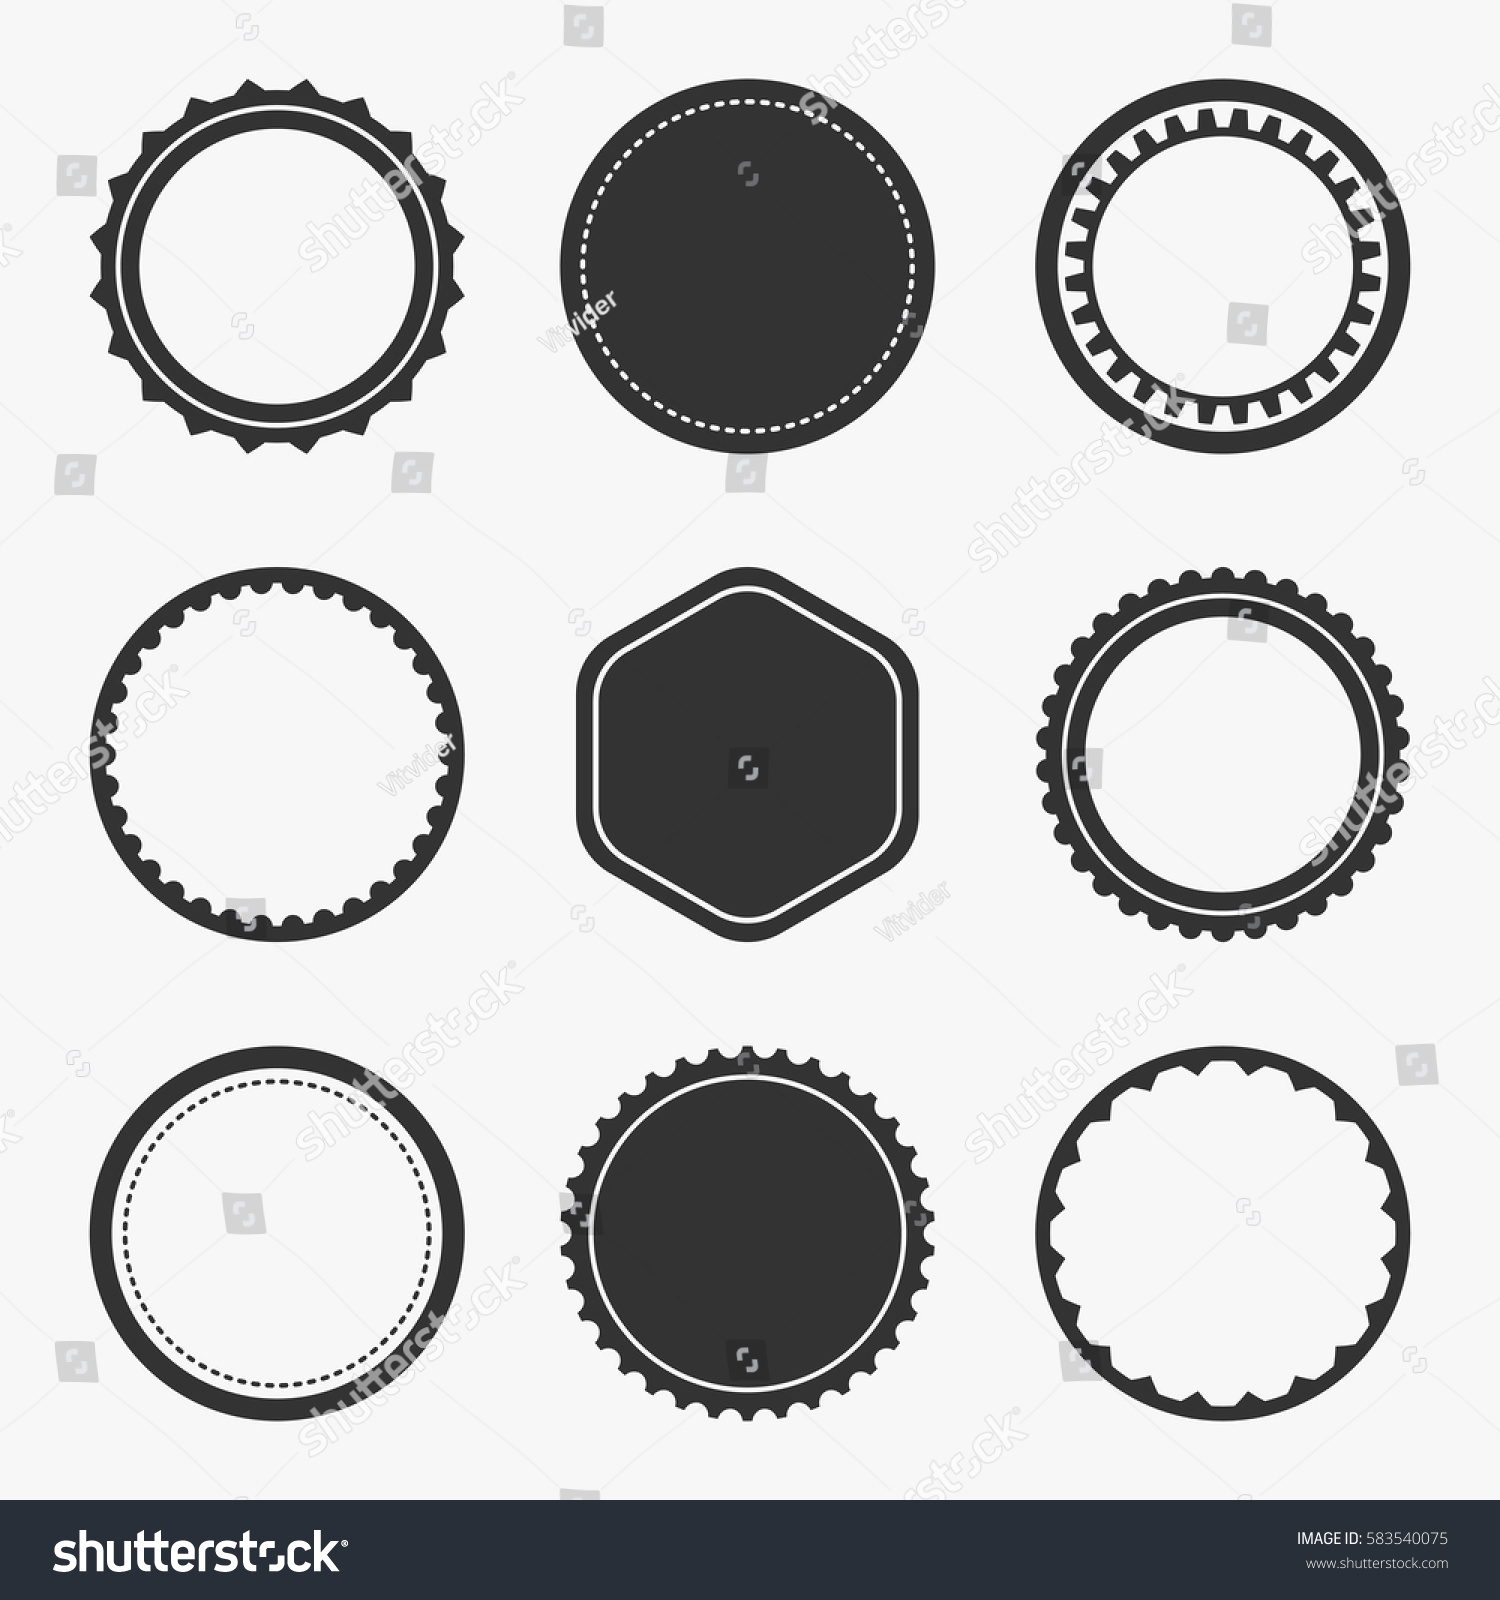 Cute Round Label Templates Photos Professional Resume Example - Round label template